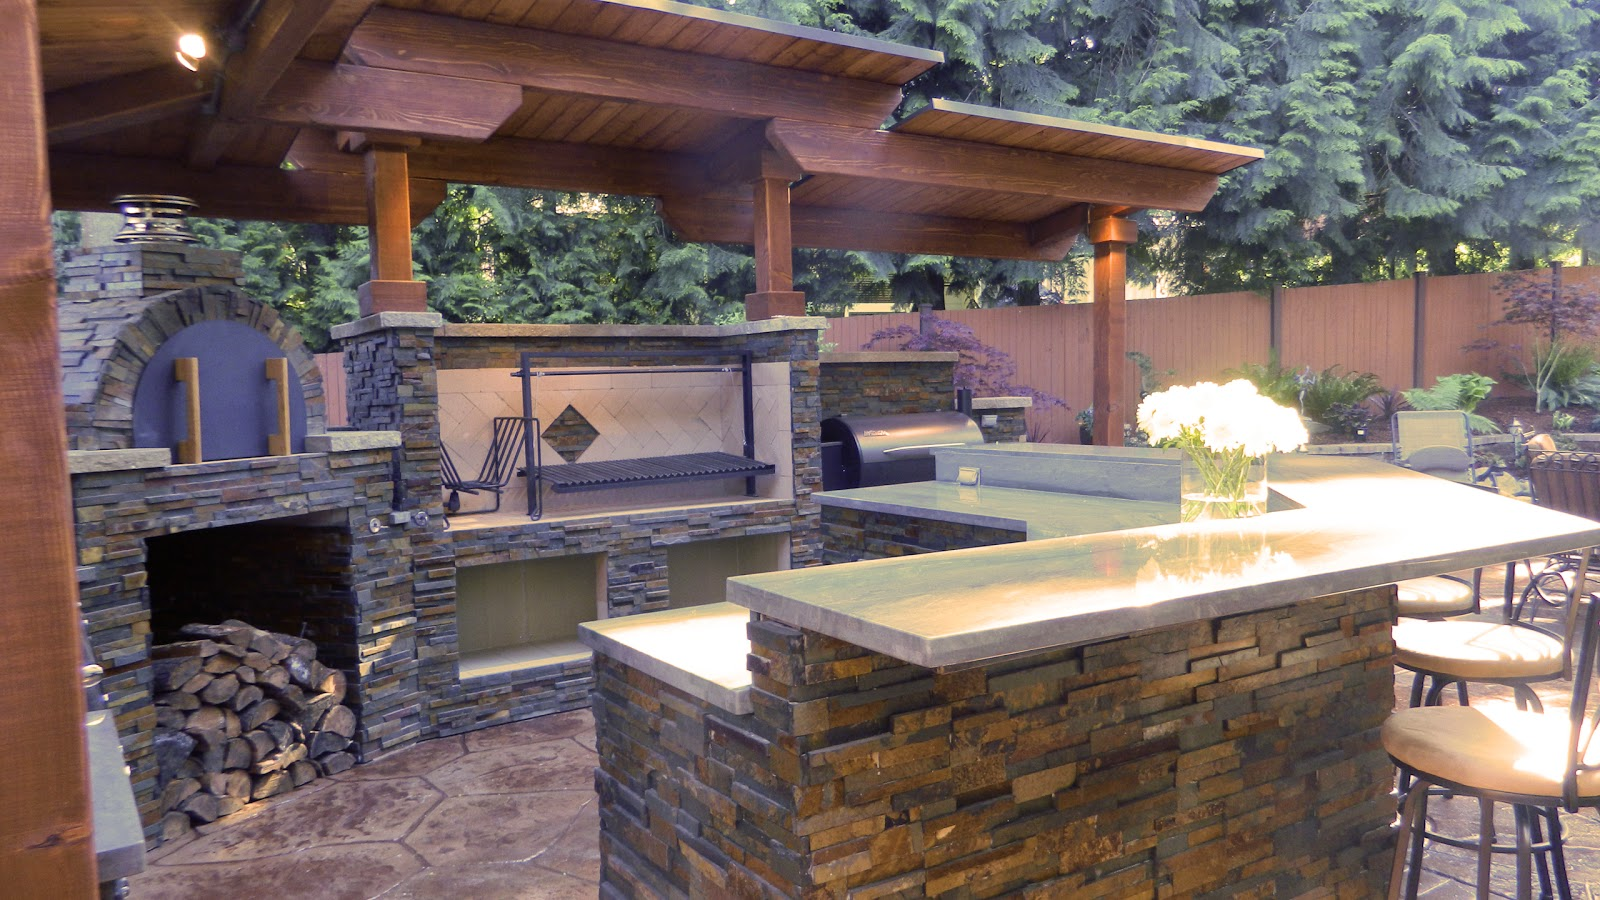 Brickwood Ovens Outdoor Kitchen With Argentinian Grill